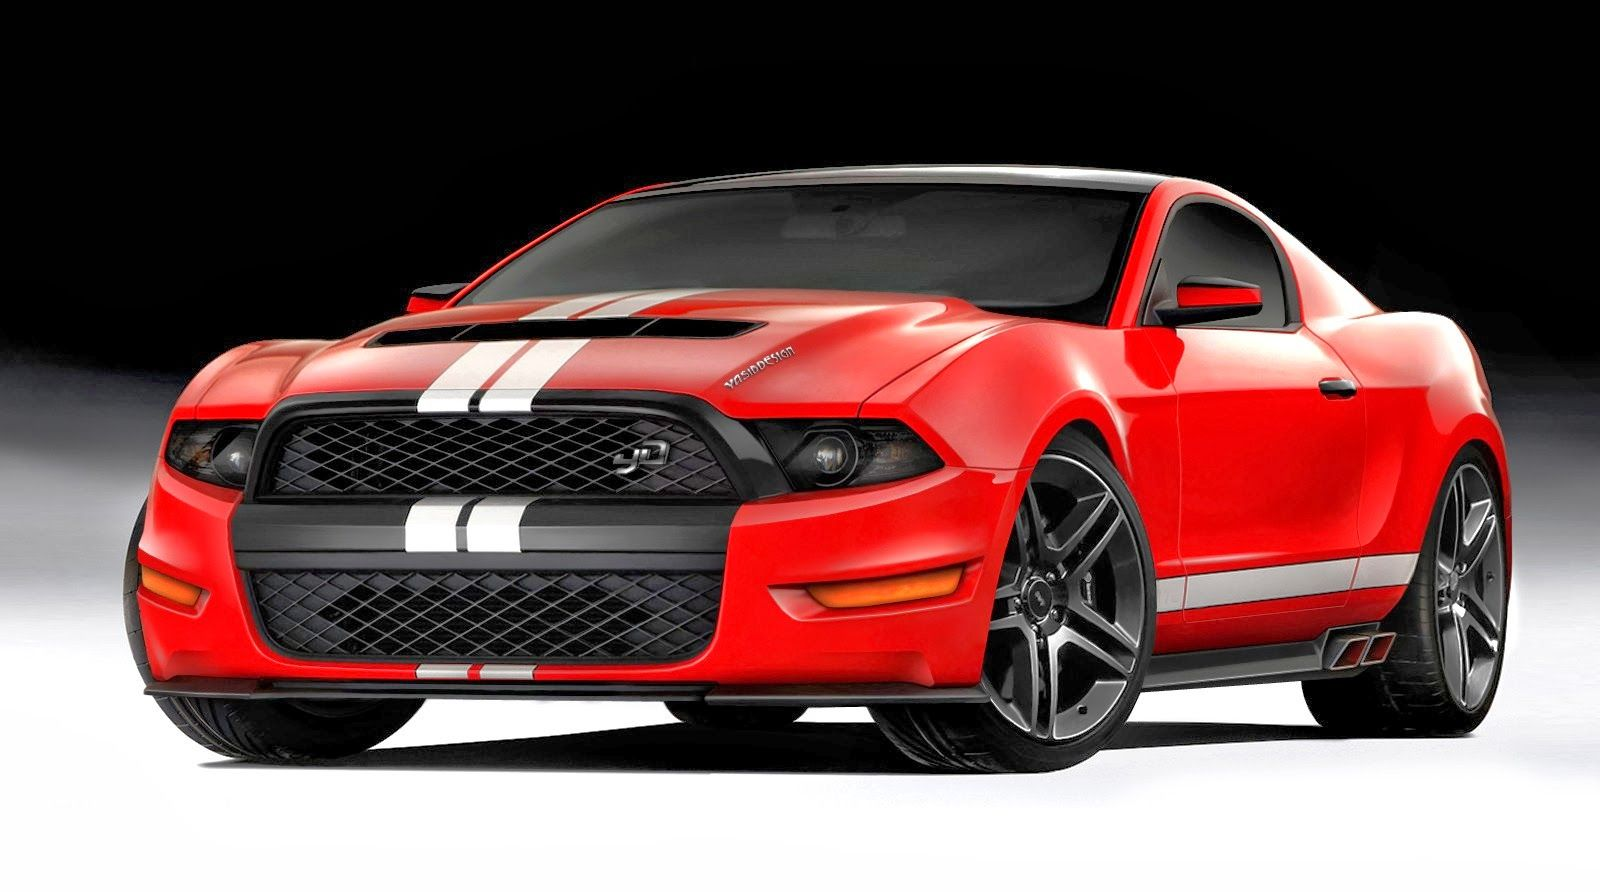 2016 ford mustang shelby gt500 review release date 2016 ford mustang shelby gt500 will - Ford Mustang Gt500 2016